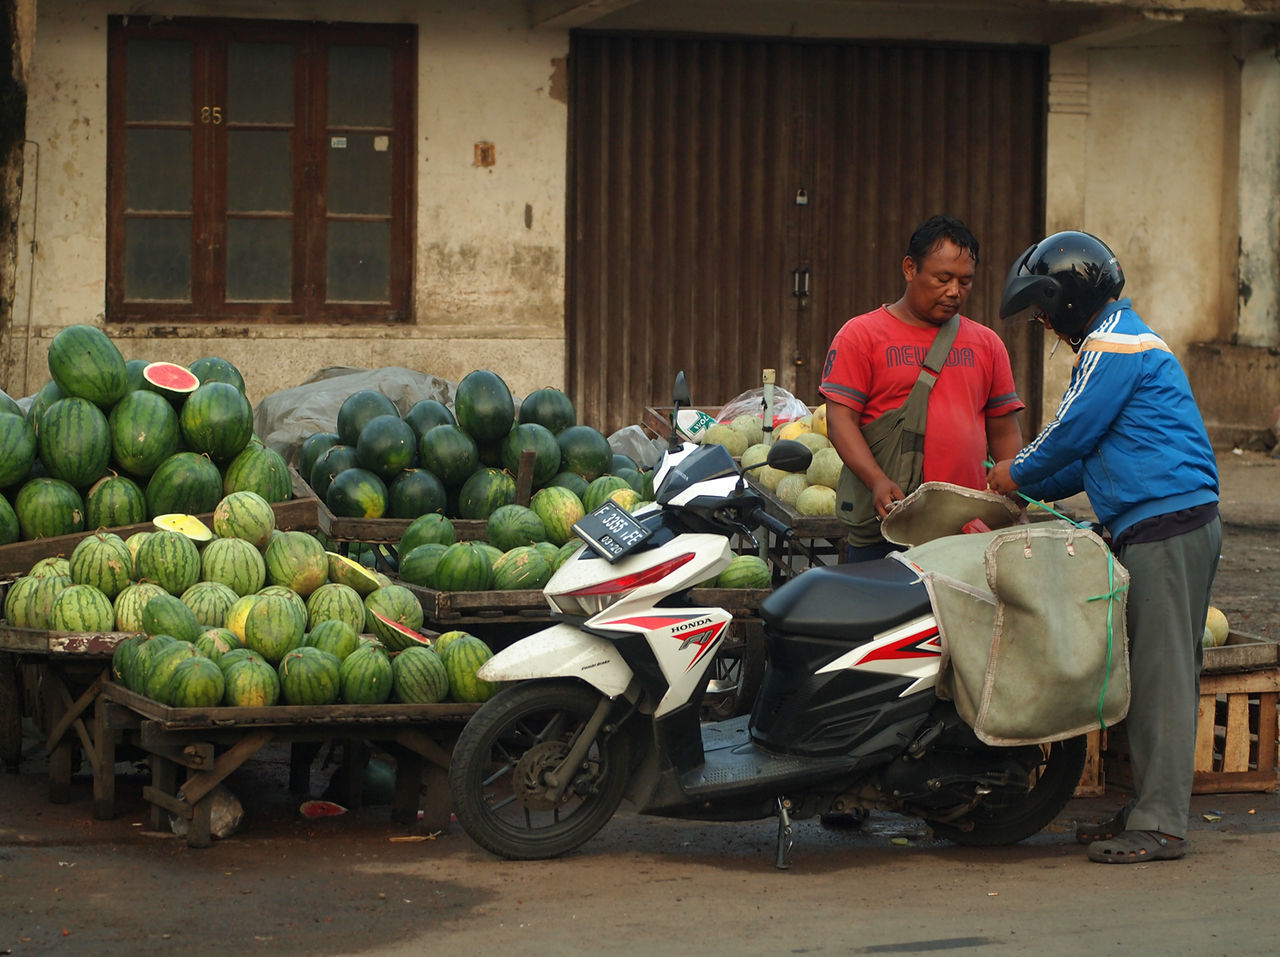 real people, two people, day, transportation, outdoors, motorcycle, building exterior, fruit, built structure, young women, helmet, young adult, togetherness, women, men, architecture, adult, people